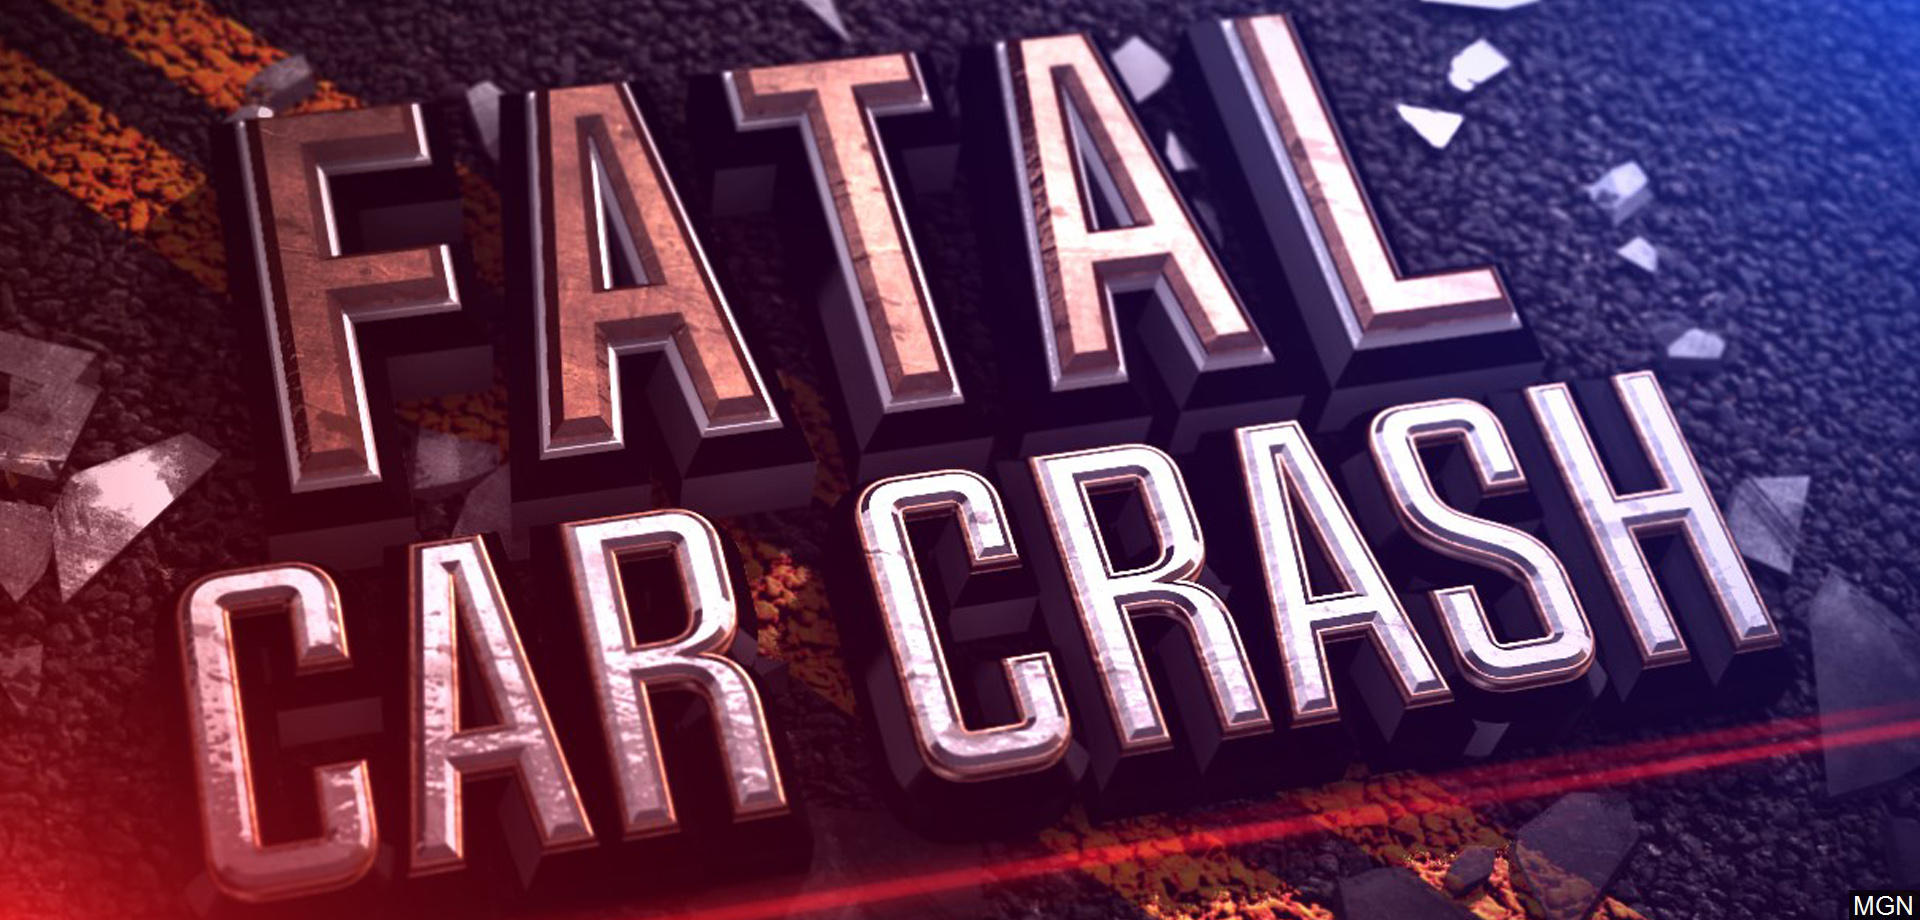 1 dead, 1 injured after wreckage on Greensboro Avenue Sunday